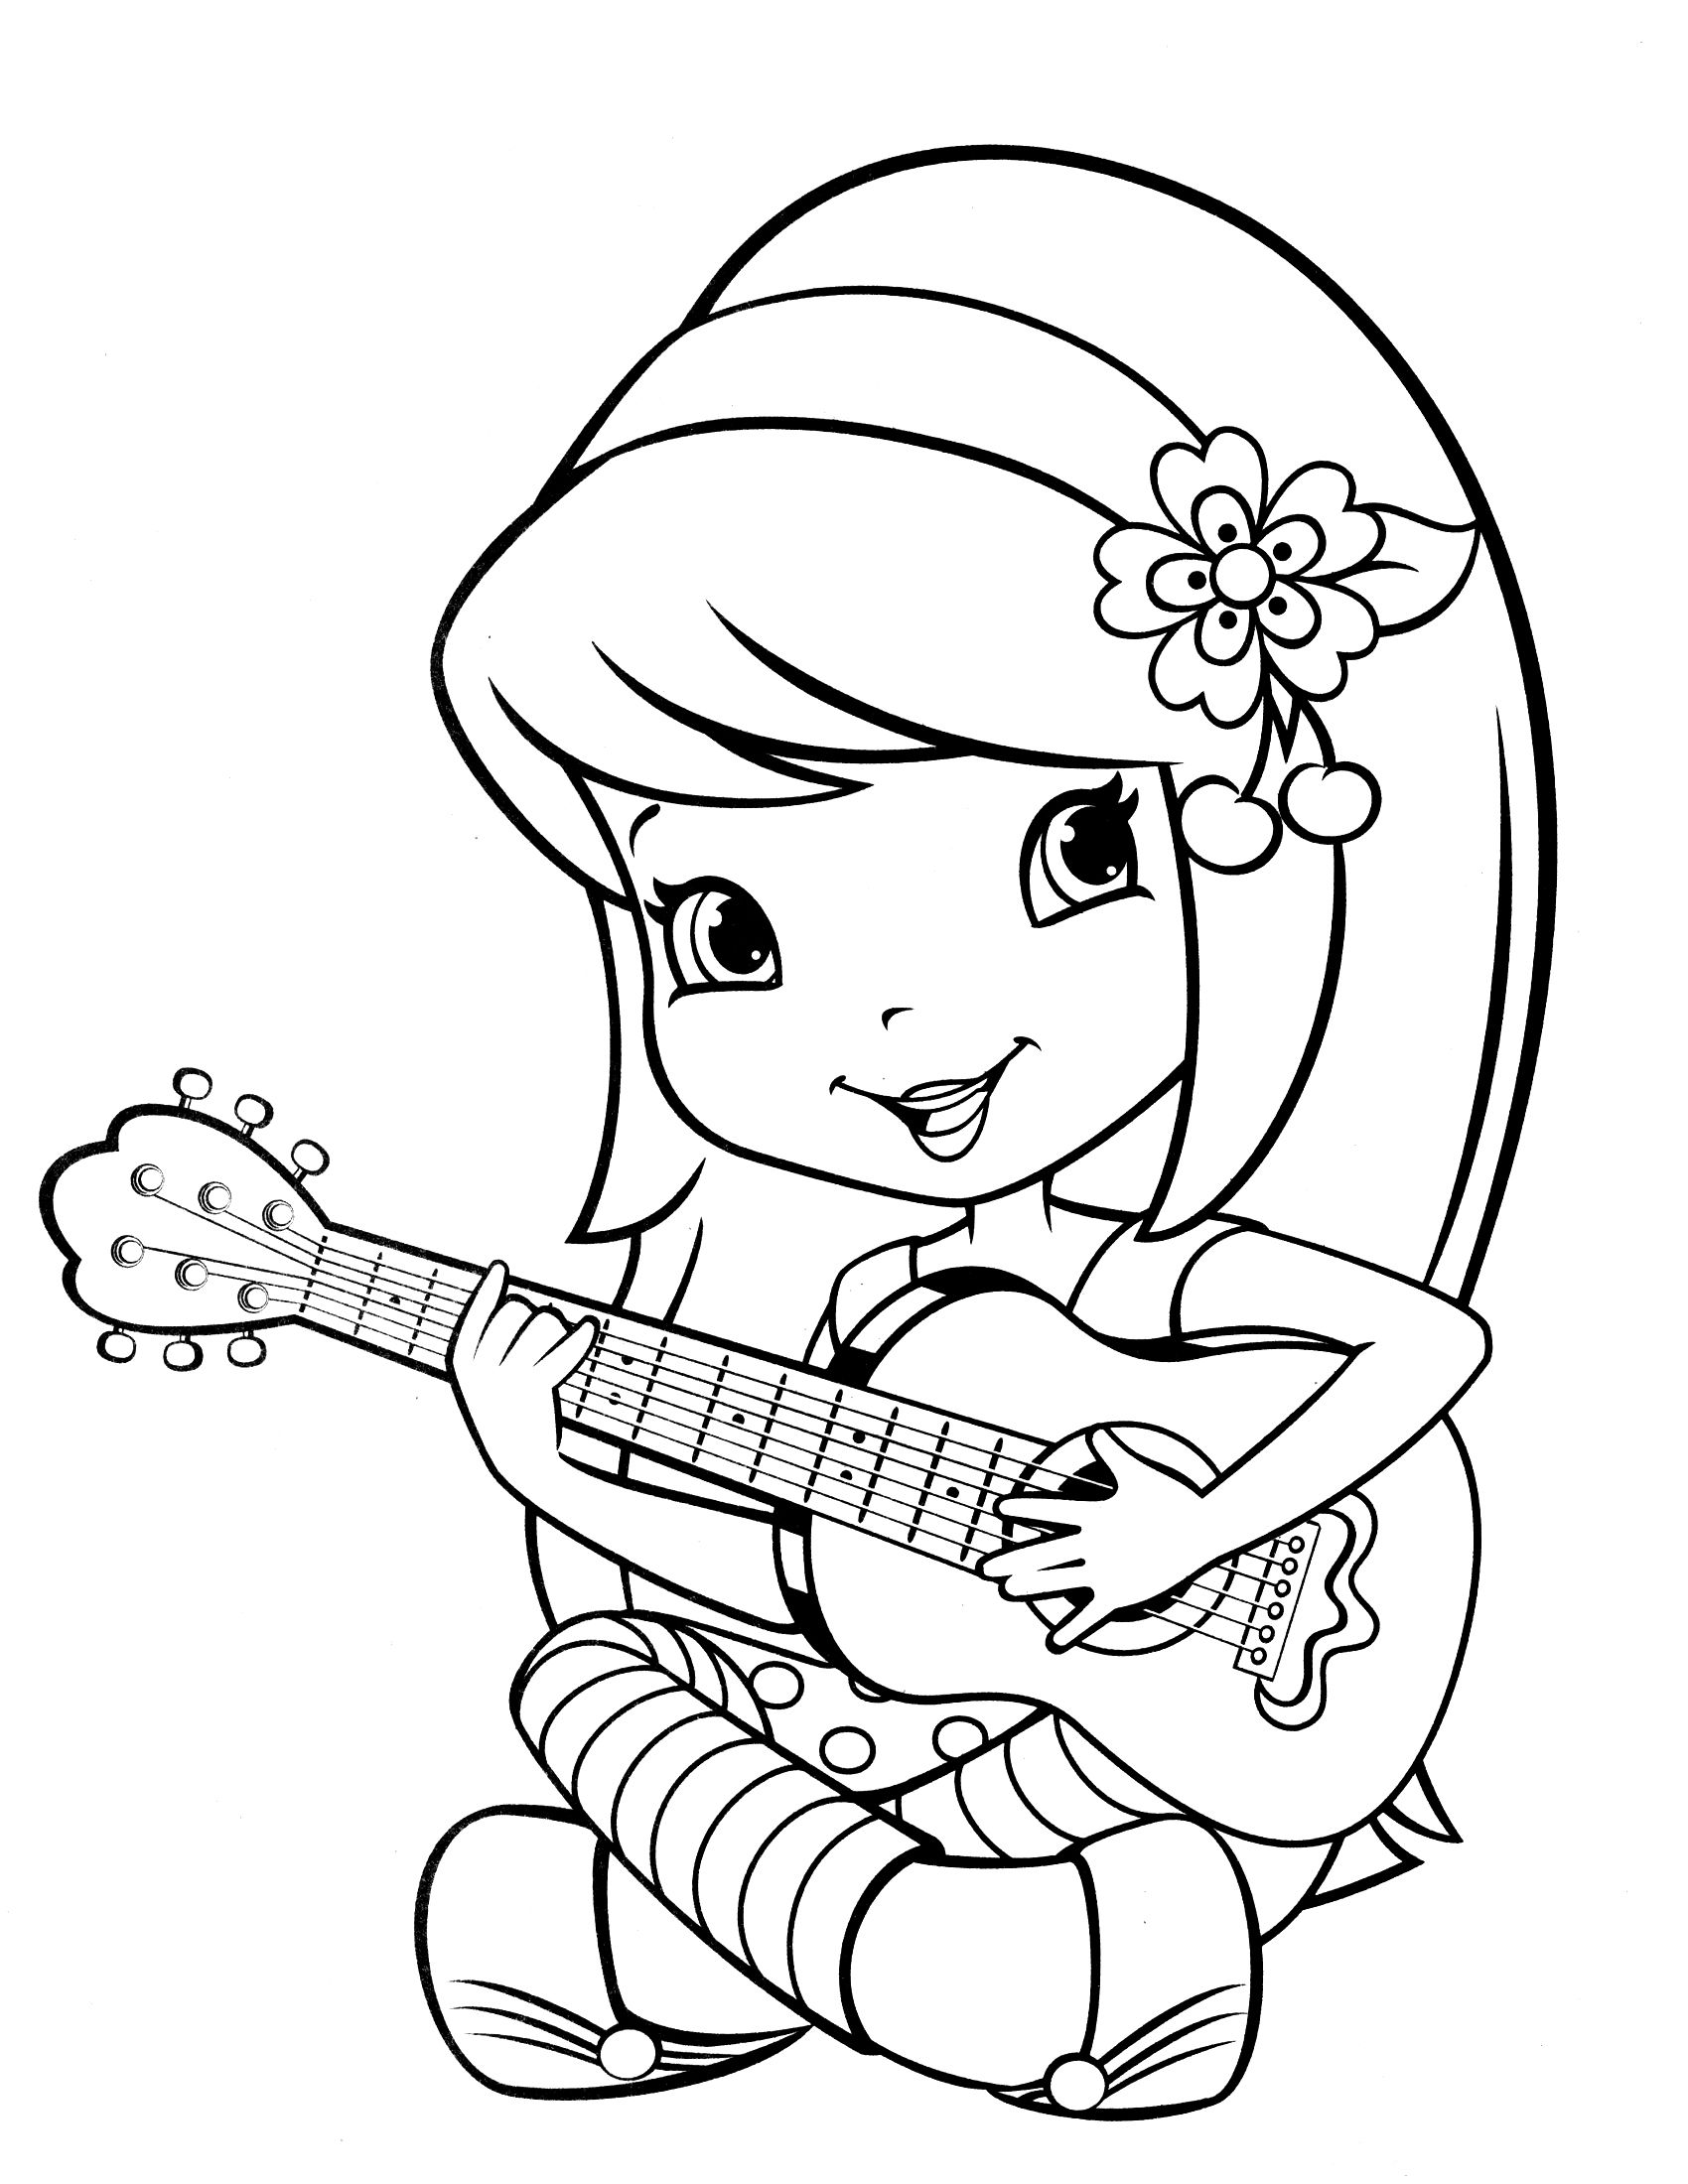 Childrens online colouring book - Strawberry Shortcake Coloring Pages Free Online Printable Coloring Pages Sheets For Kids Get The Latest Free Strawberry Shortcake Coloring Pages Images